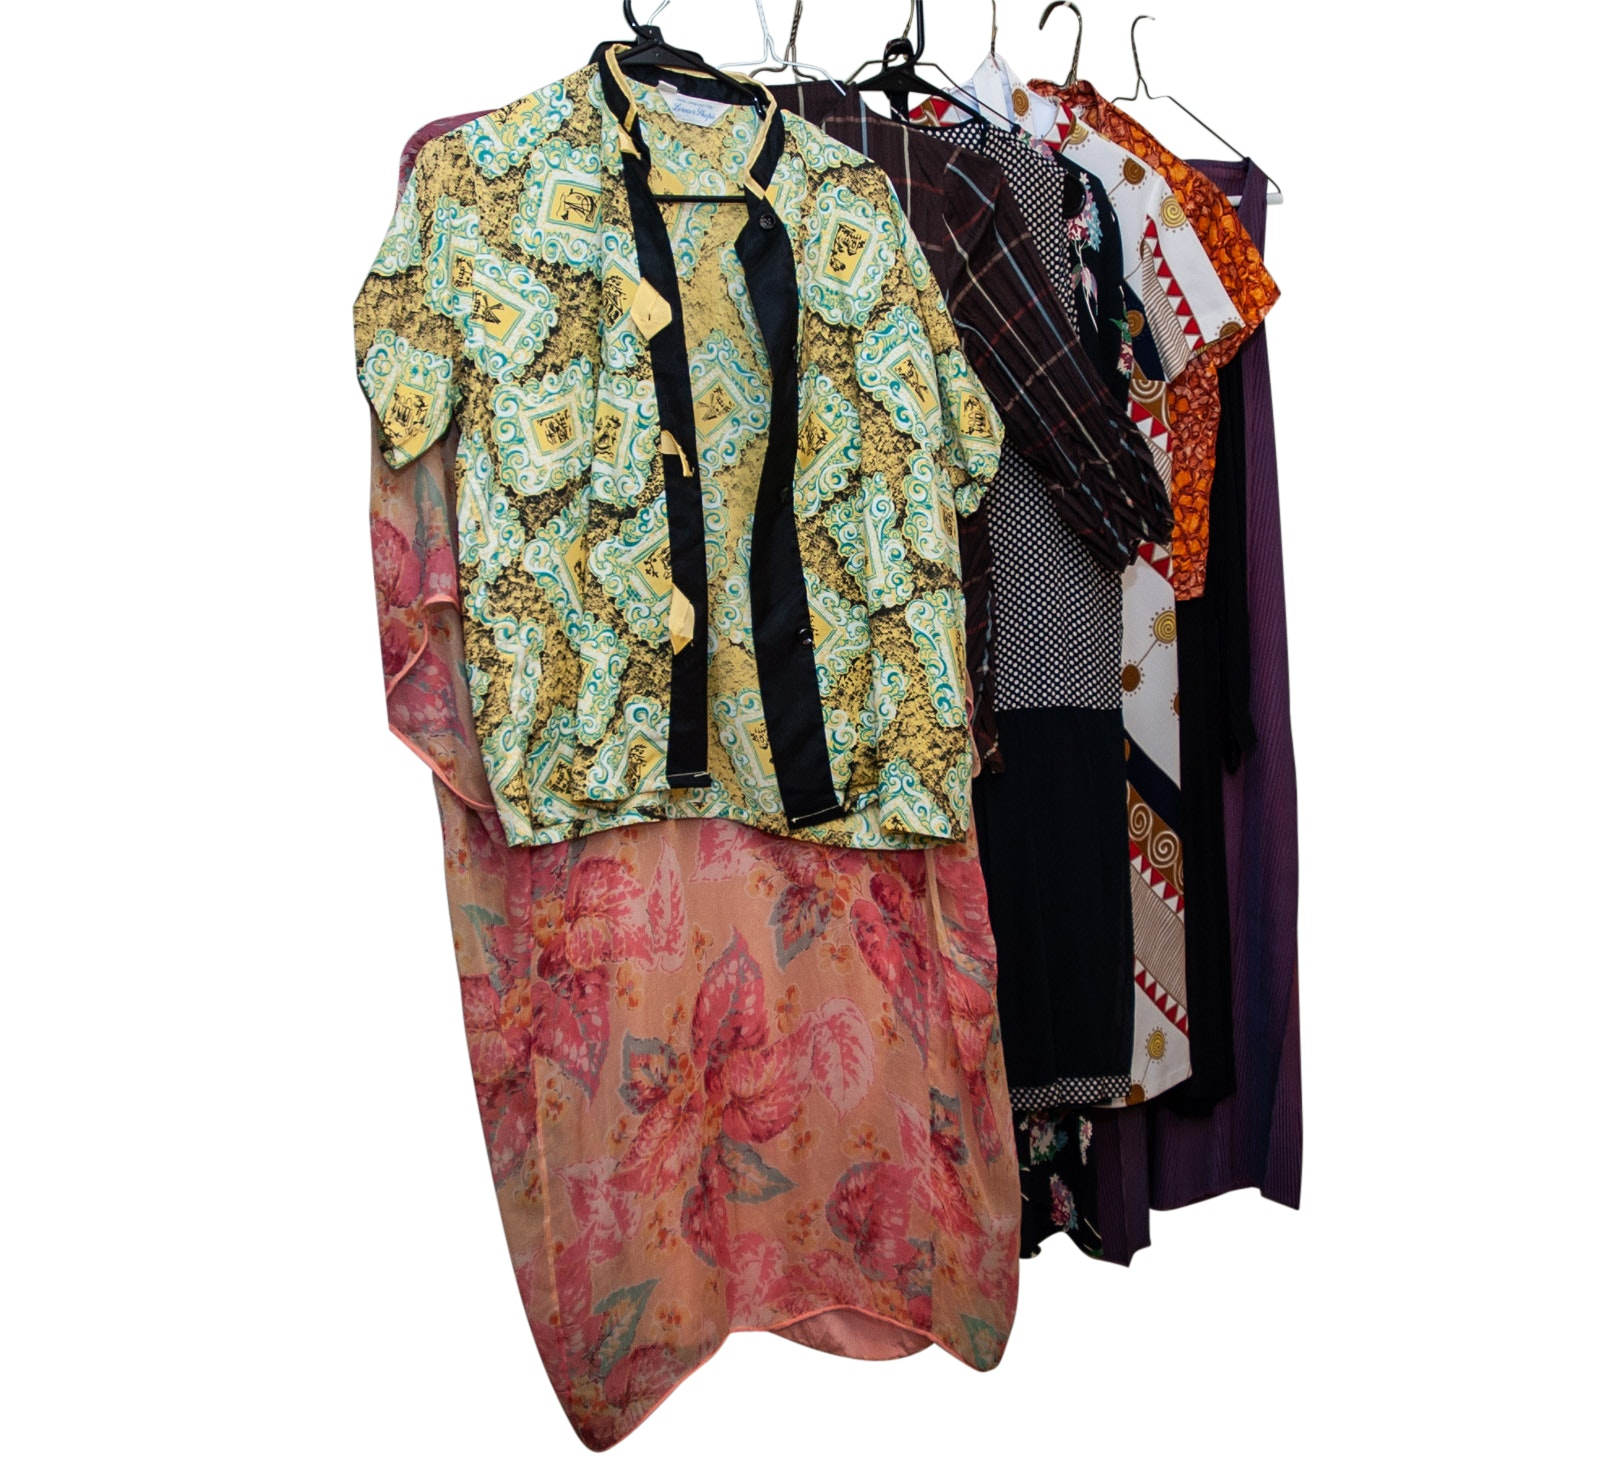 Vintage Silk and Rayon Dresses and Separates